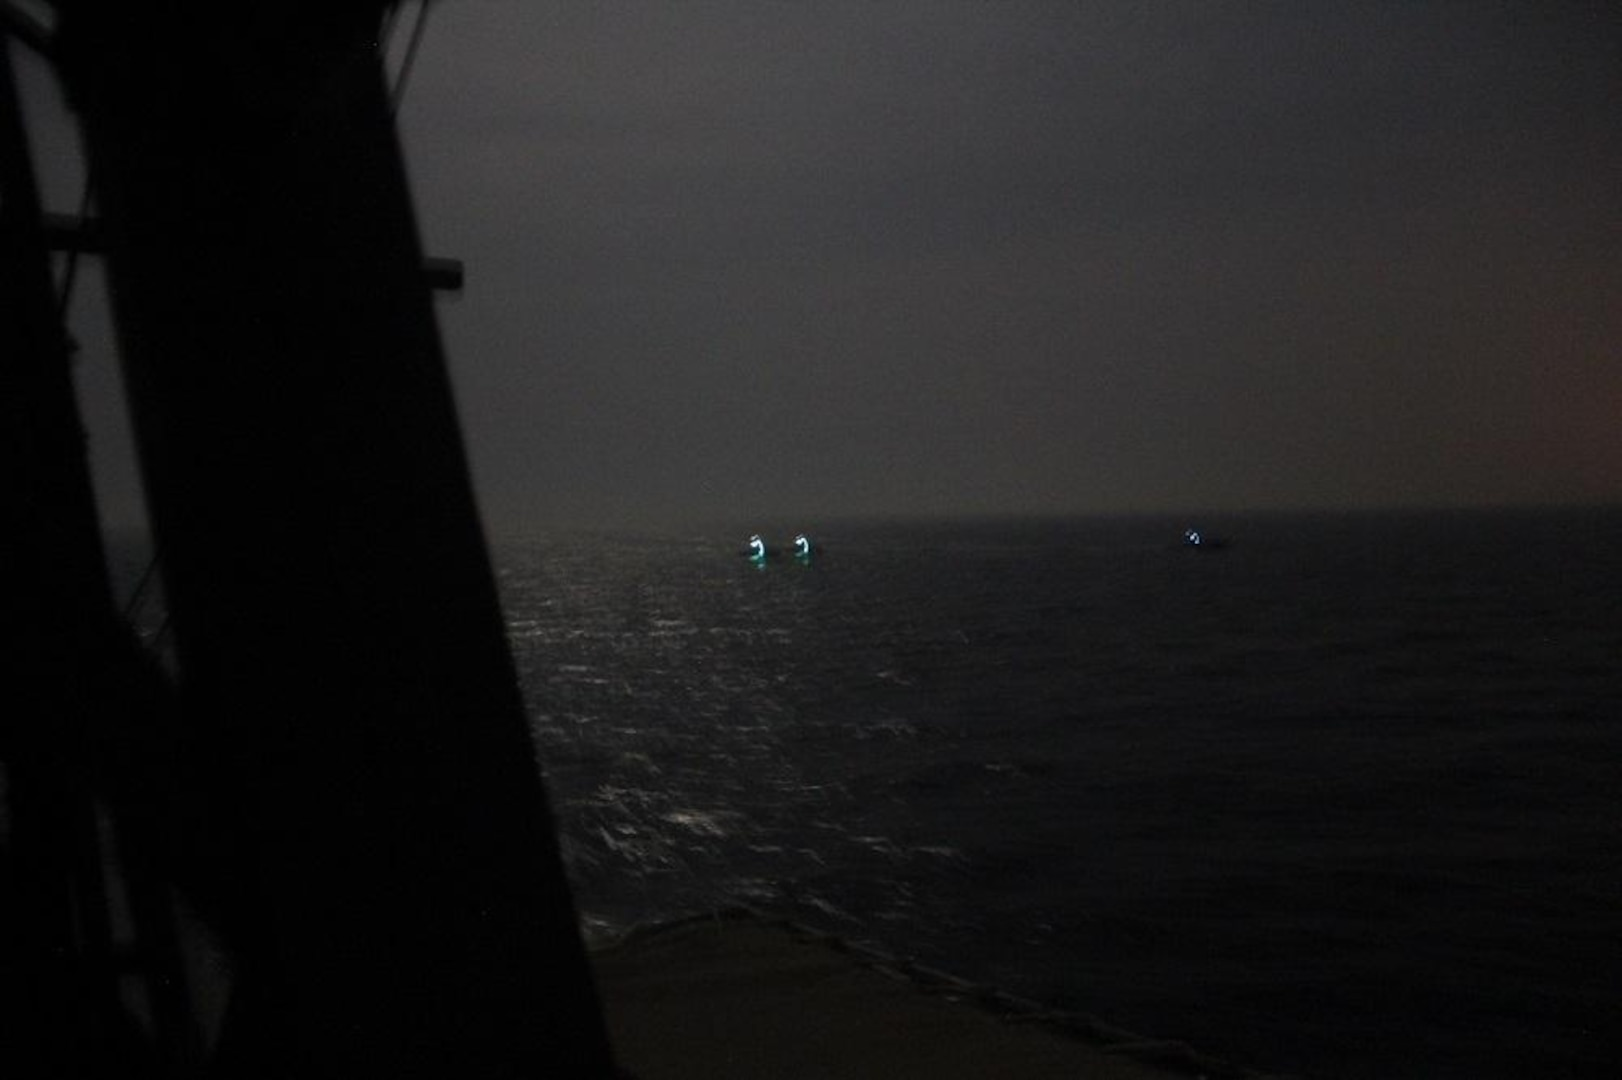 210426-N-NO146-1005 ARABIAN GULF (April 26, 2021) Three Iranian Islamic Revolutionary Guard Corps Navy (IRGCN) fast inshore attack craft (FIAC) approach the patrol coastal ship USS Firebolt (PC 10), while the U.S. vessel was conducting routine maritime security patrols in the international waters of the North Arabian Gulf, April 26. Firebolt is assigned to U.S. Naval Forces Central Command's Task Force (TF) 55. (U.S. Navy Photo)